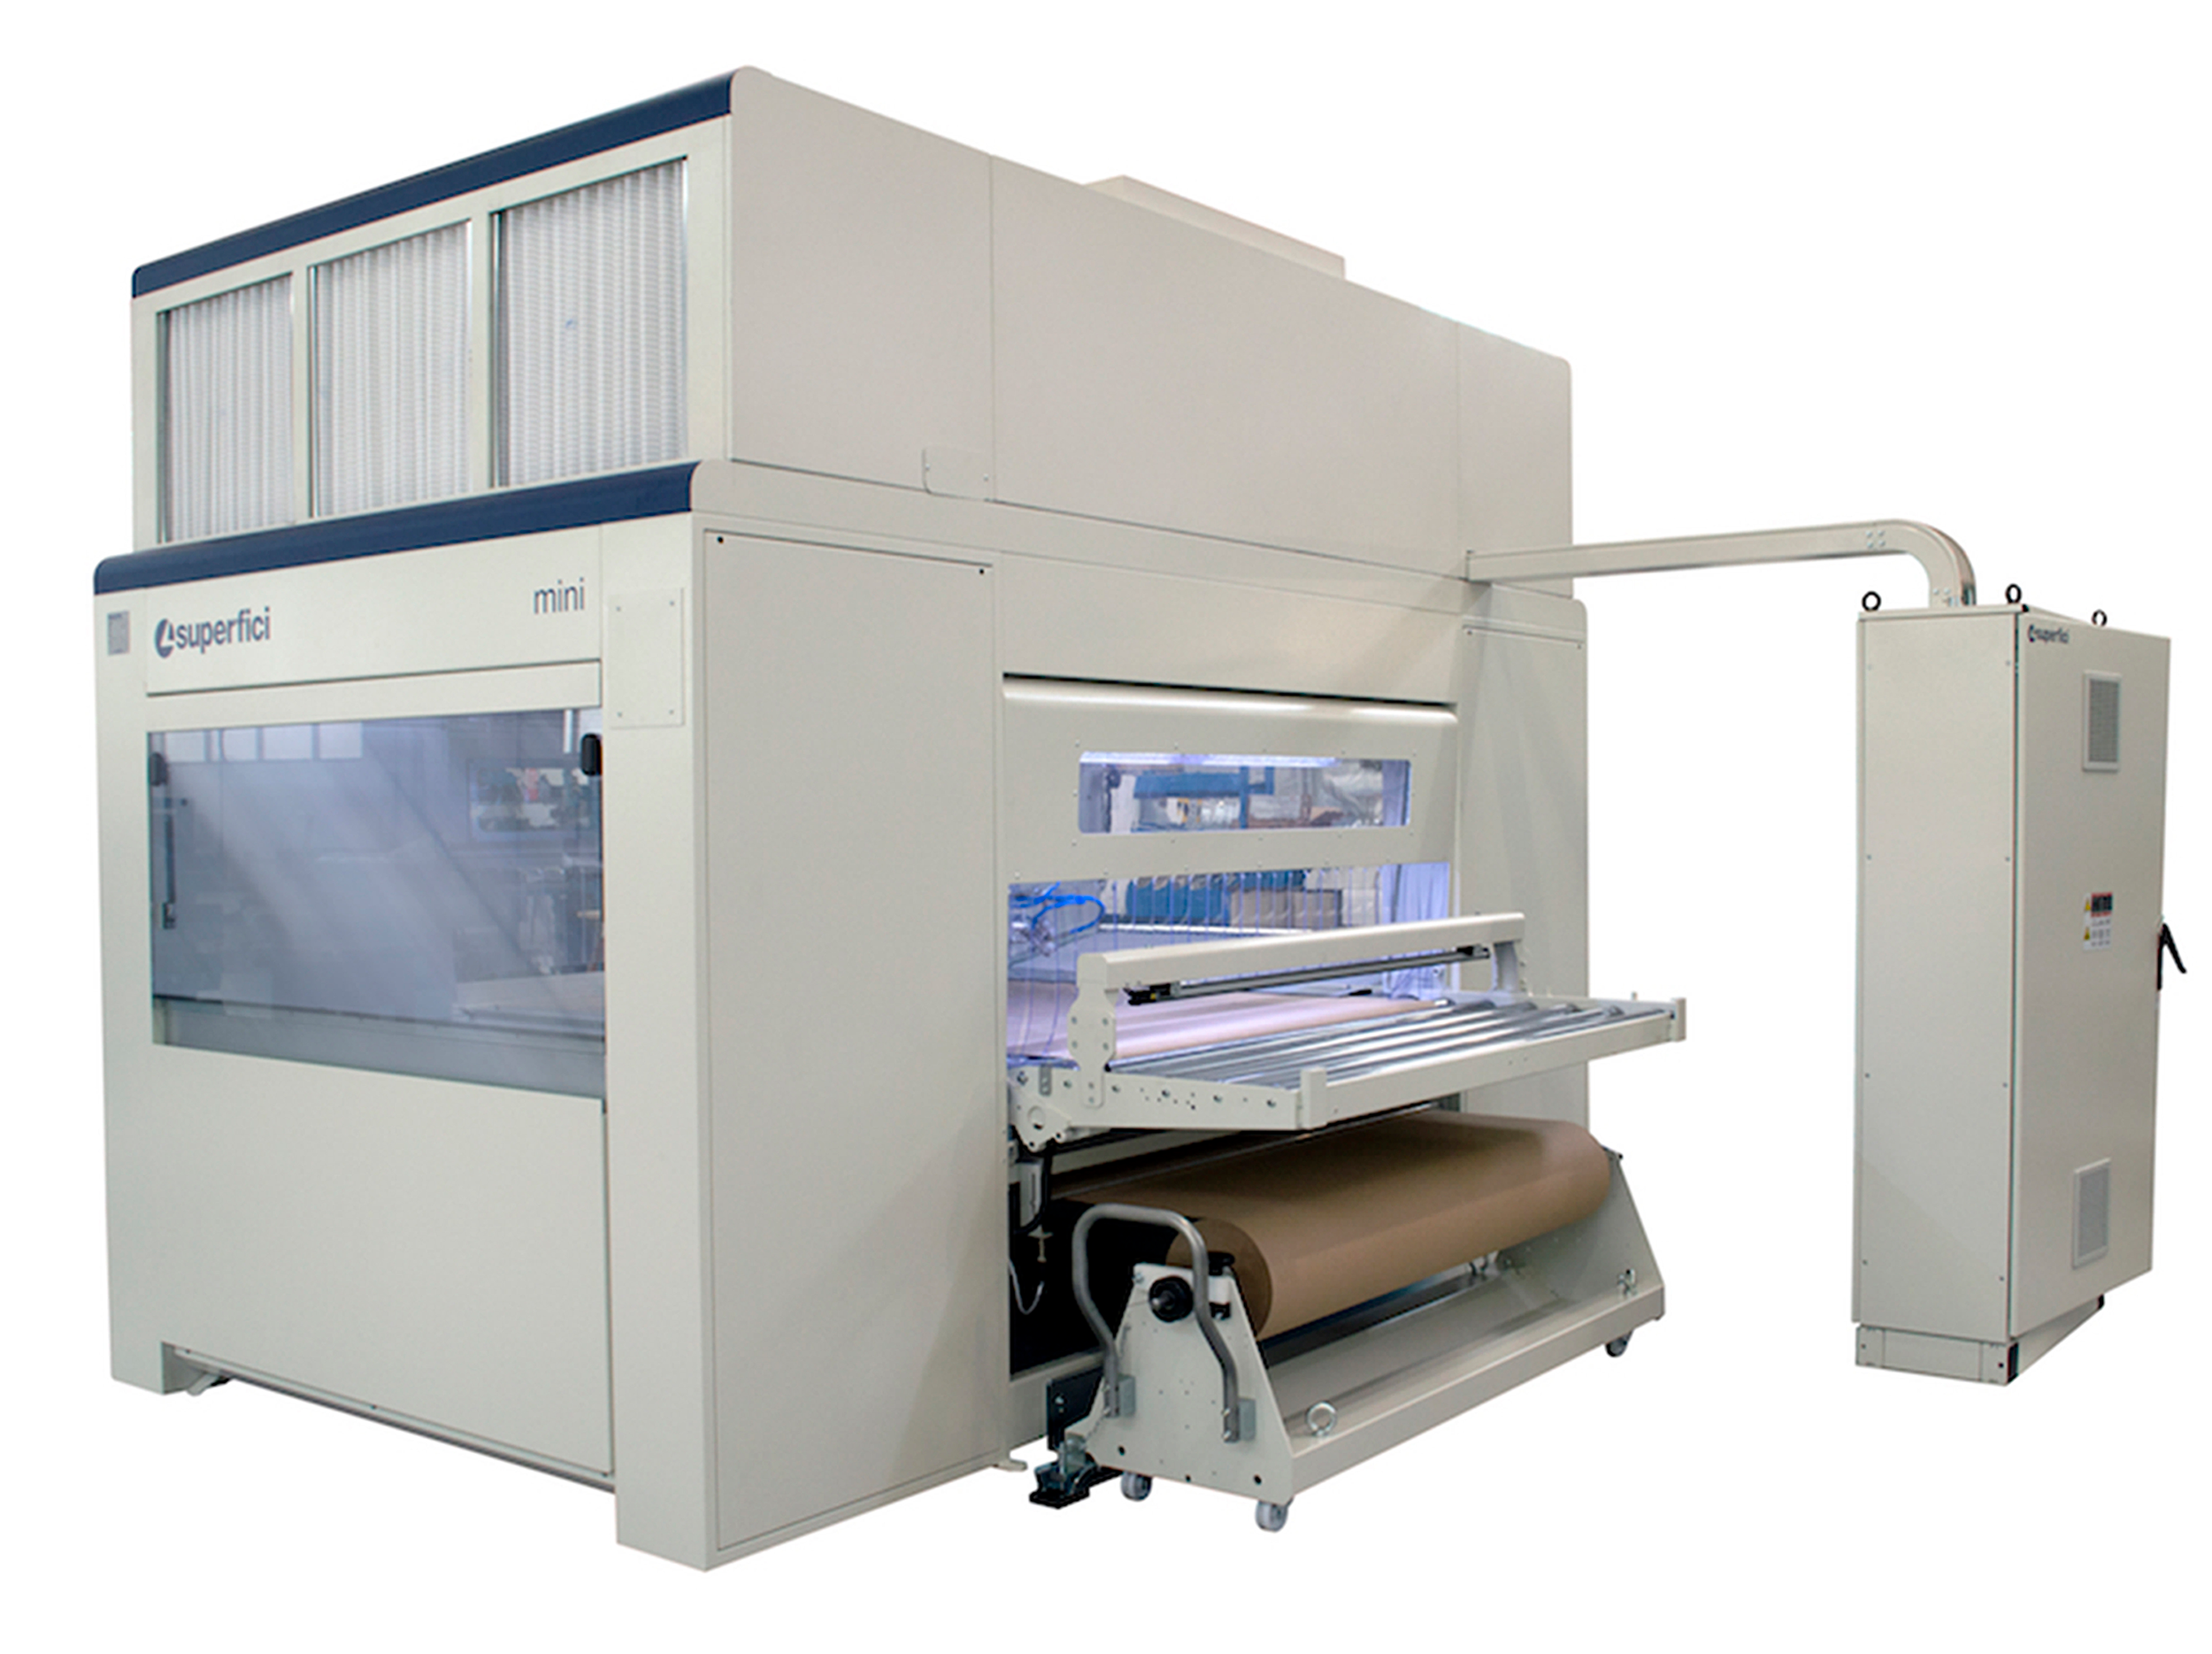 The Mini Plus Evolution from Superfici America is the Next Evolution in Automated Spray Finishing